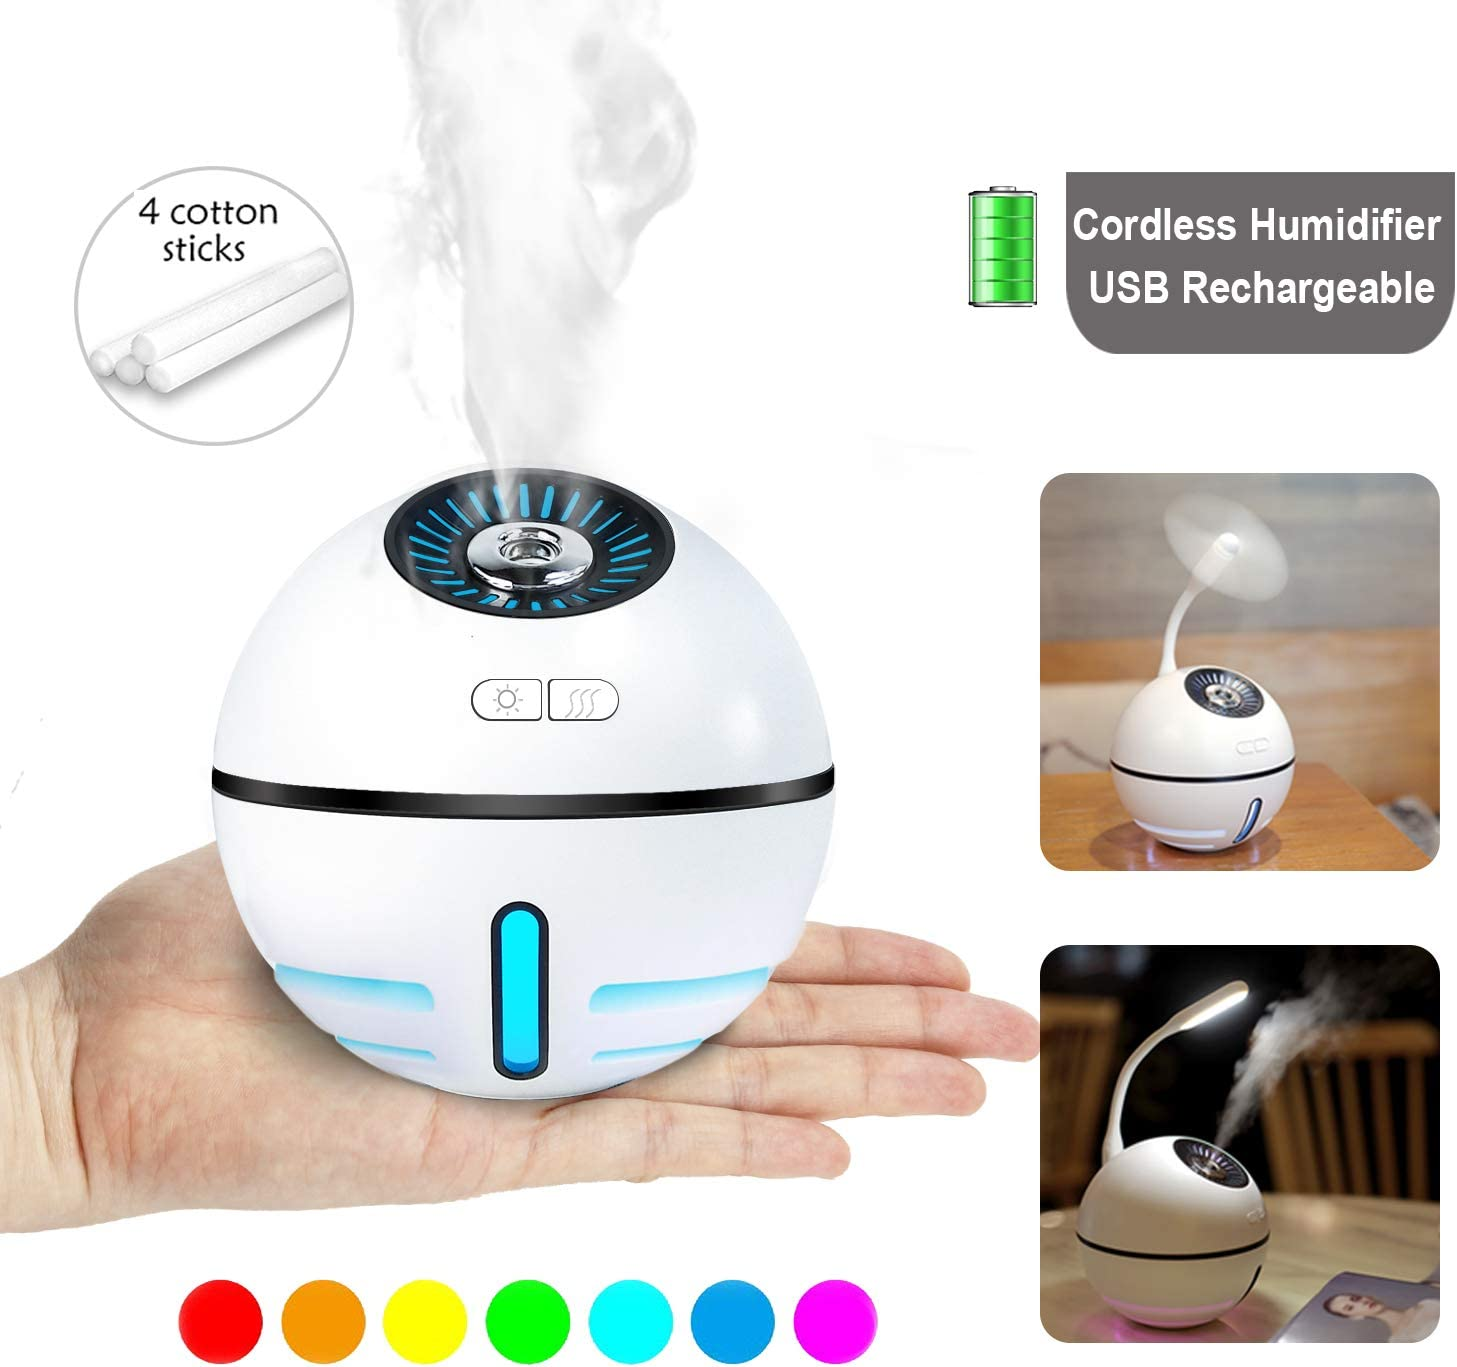 DCMEKA Office Humidifier for Desk, [Newest Updated Version] USB Cool Mist Humidifier Personal Humidifier, Quiet Desk Humidifiers for Bedroom Home Baby